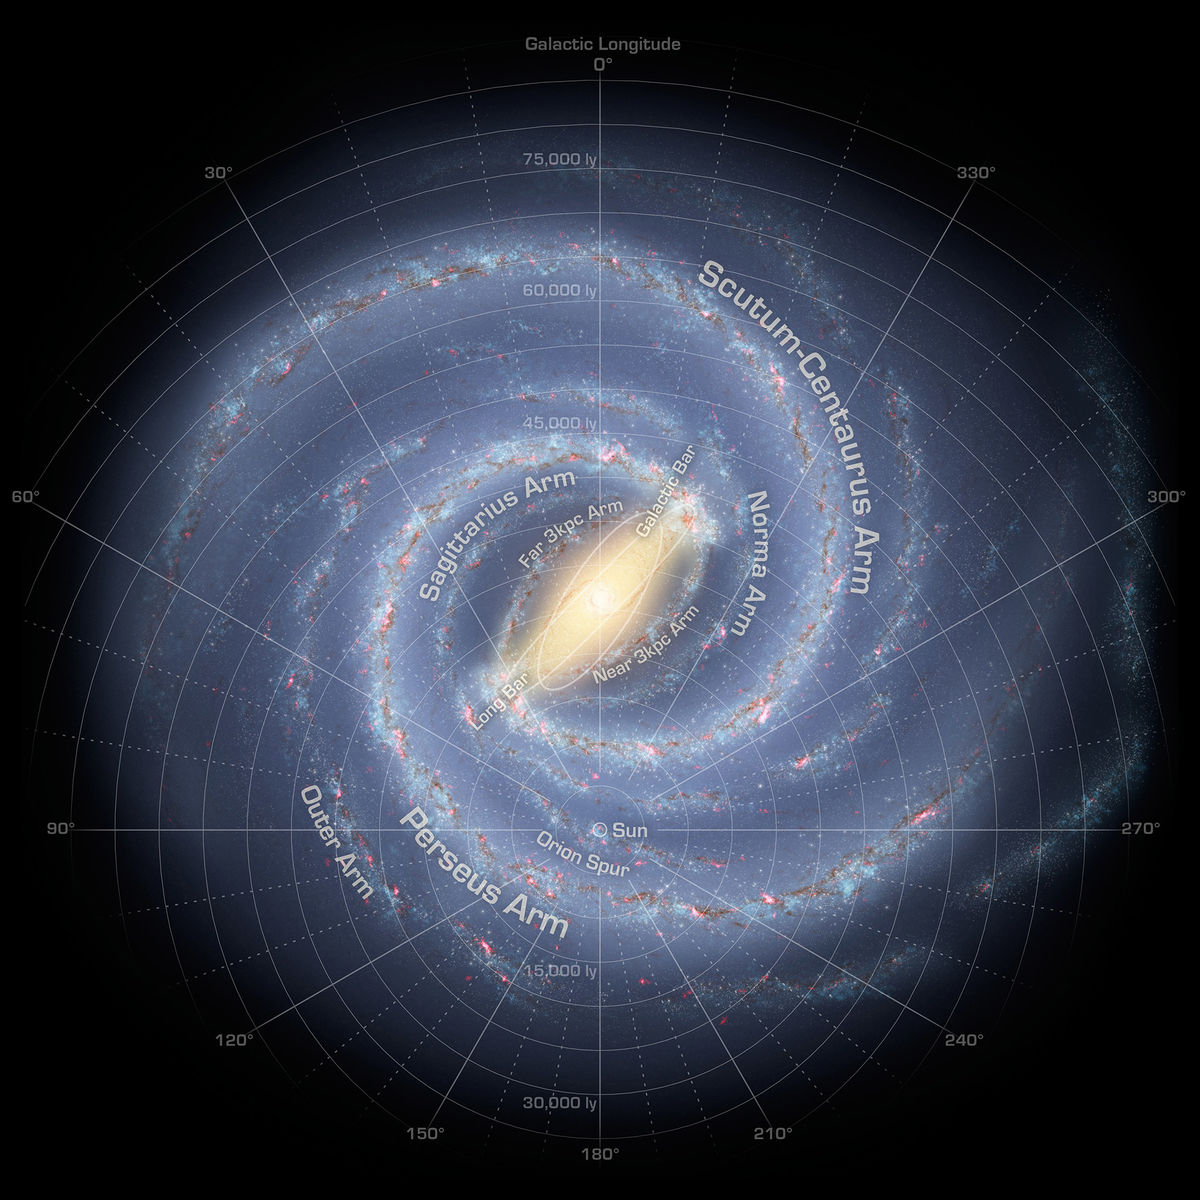 The most current map of the Milky Way is shown in an artist's representation. The Sun is directly below the galactic center, near the Orion Spur. The Scutum-Centaurus arms sweeps out to the right and above, going behind the center to the far side.